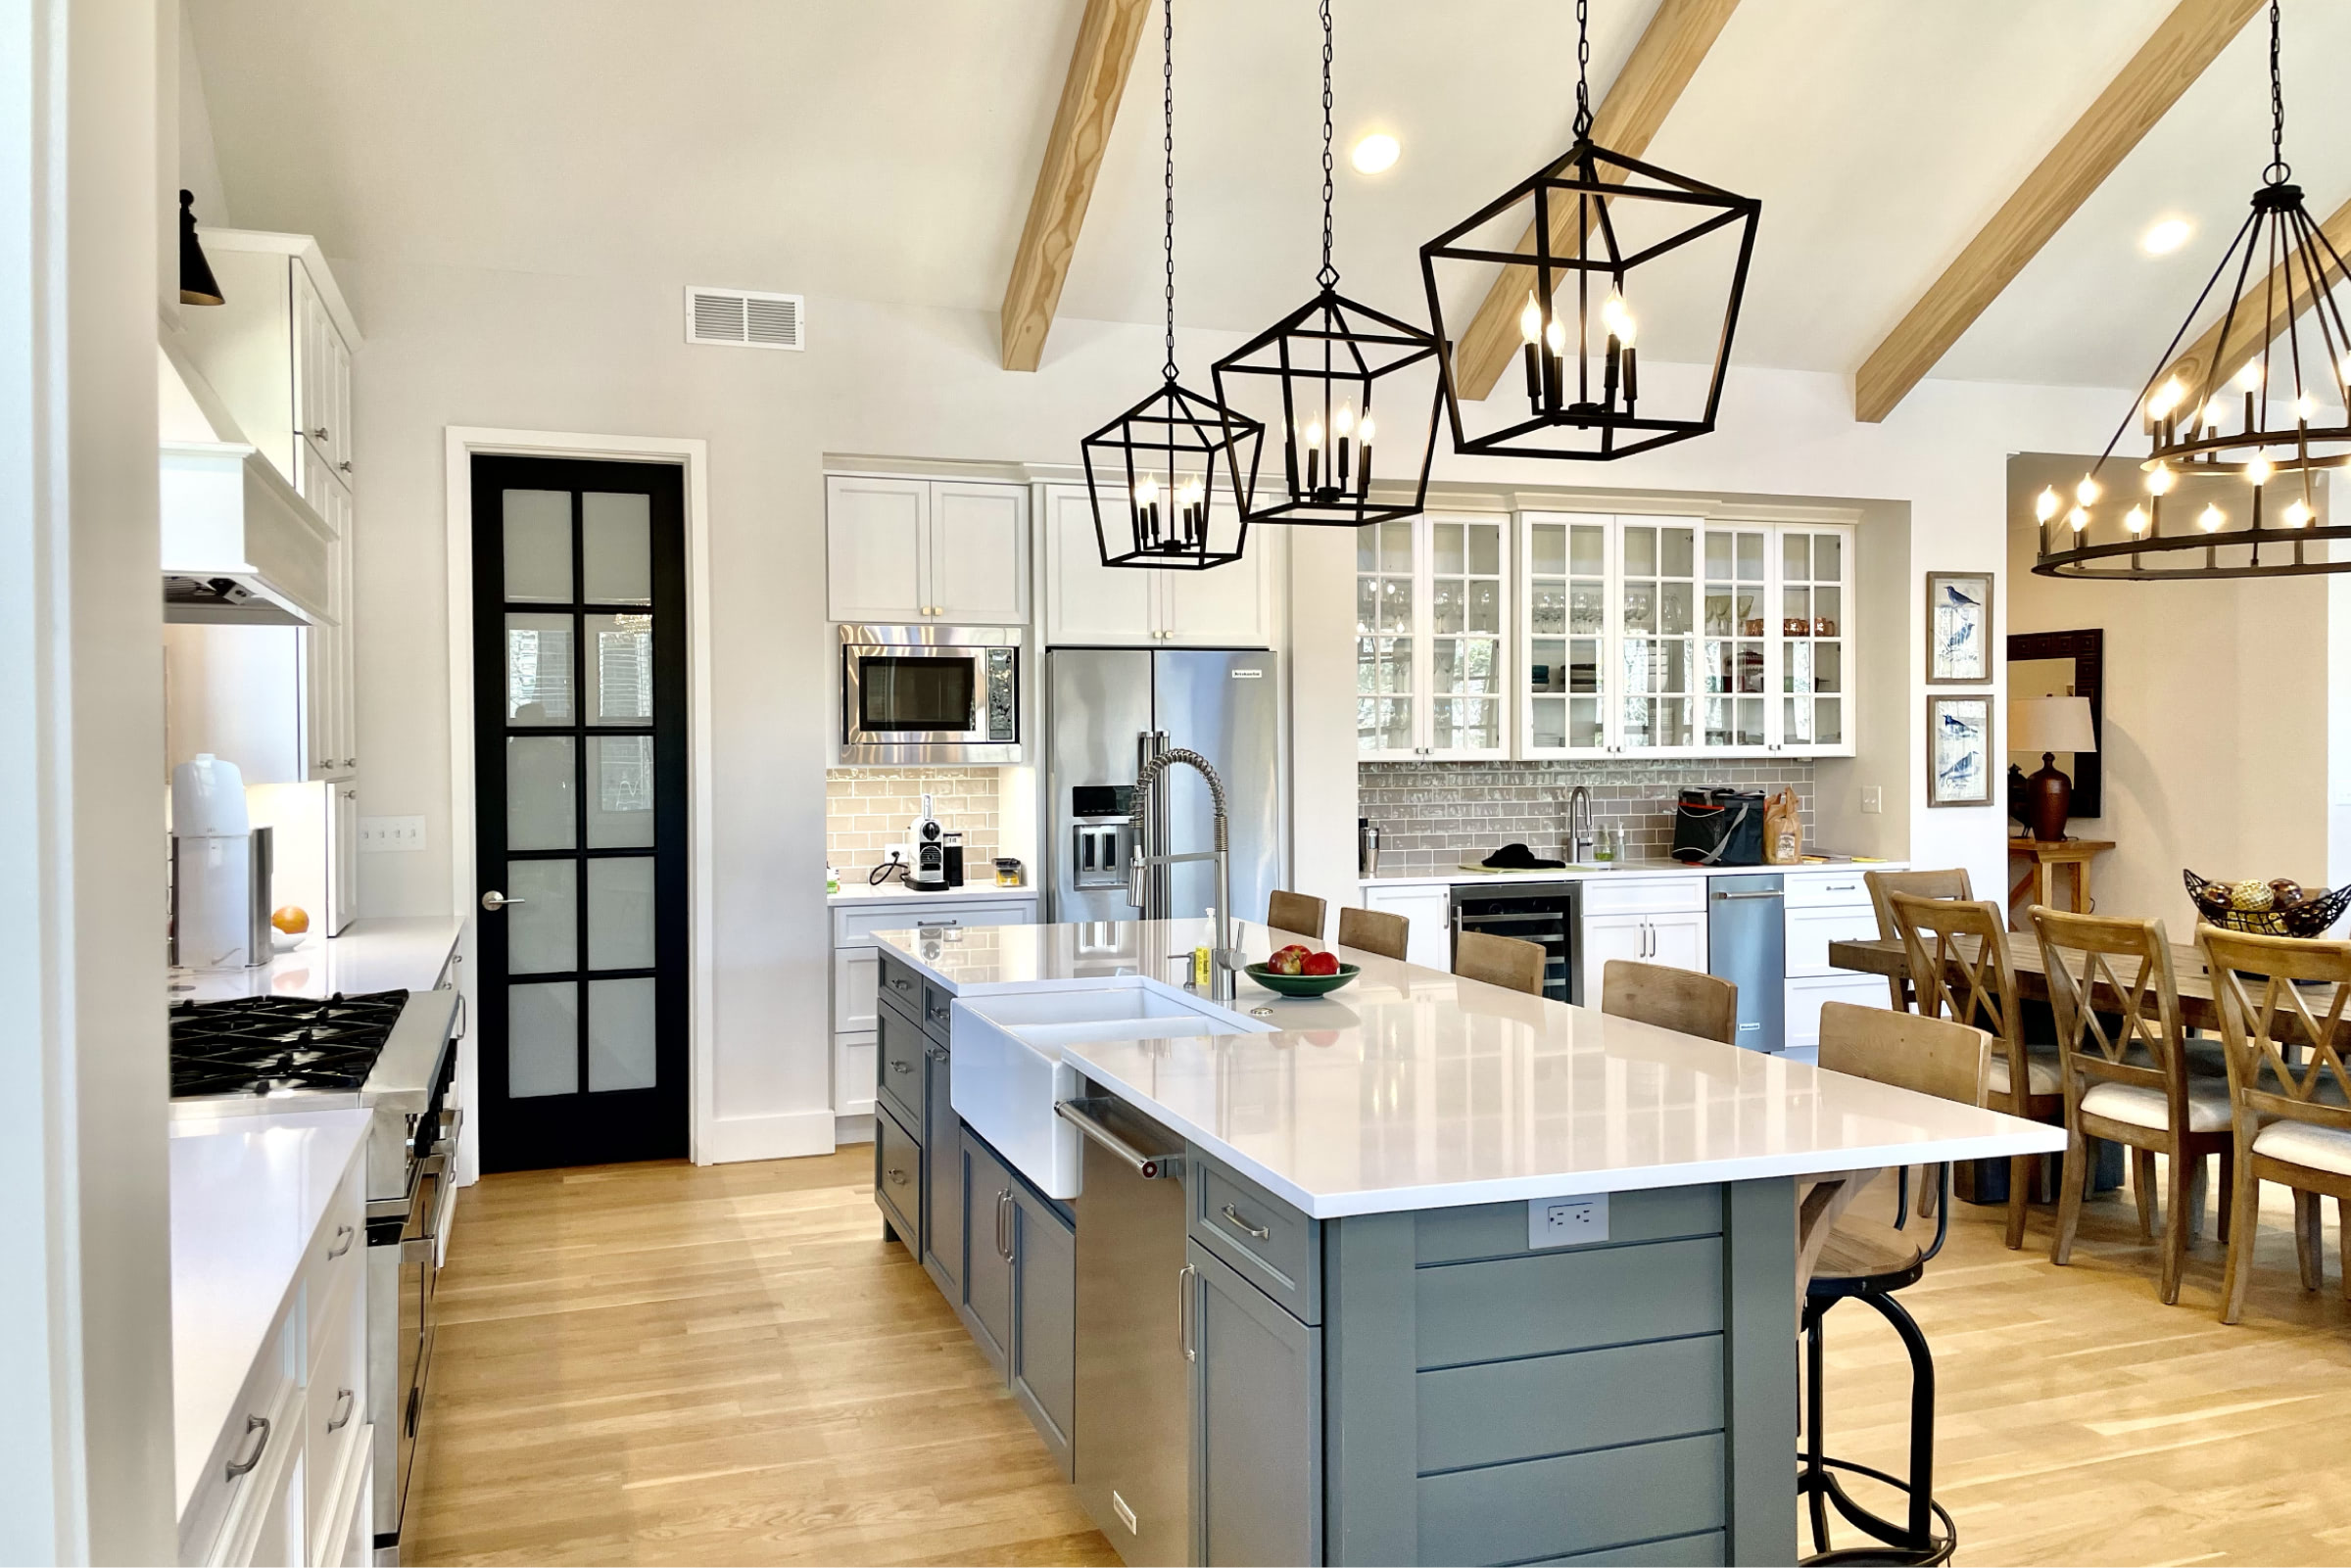 Lake Cove kitchen and dining lighting